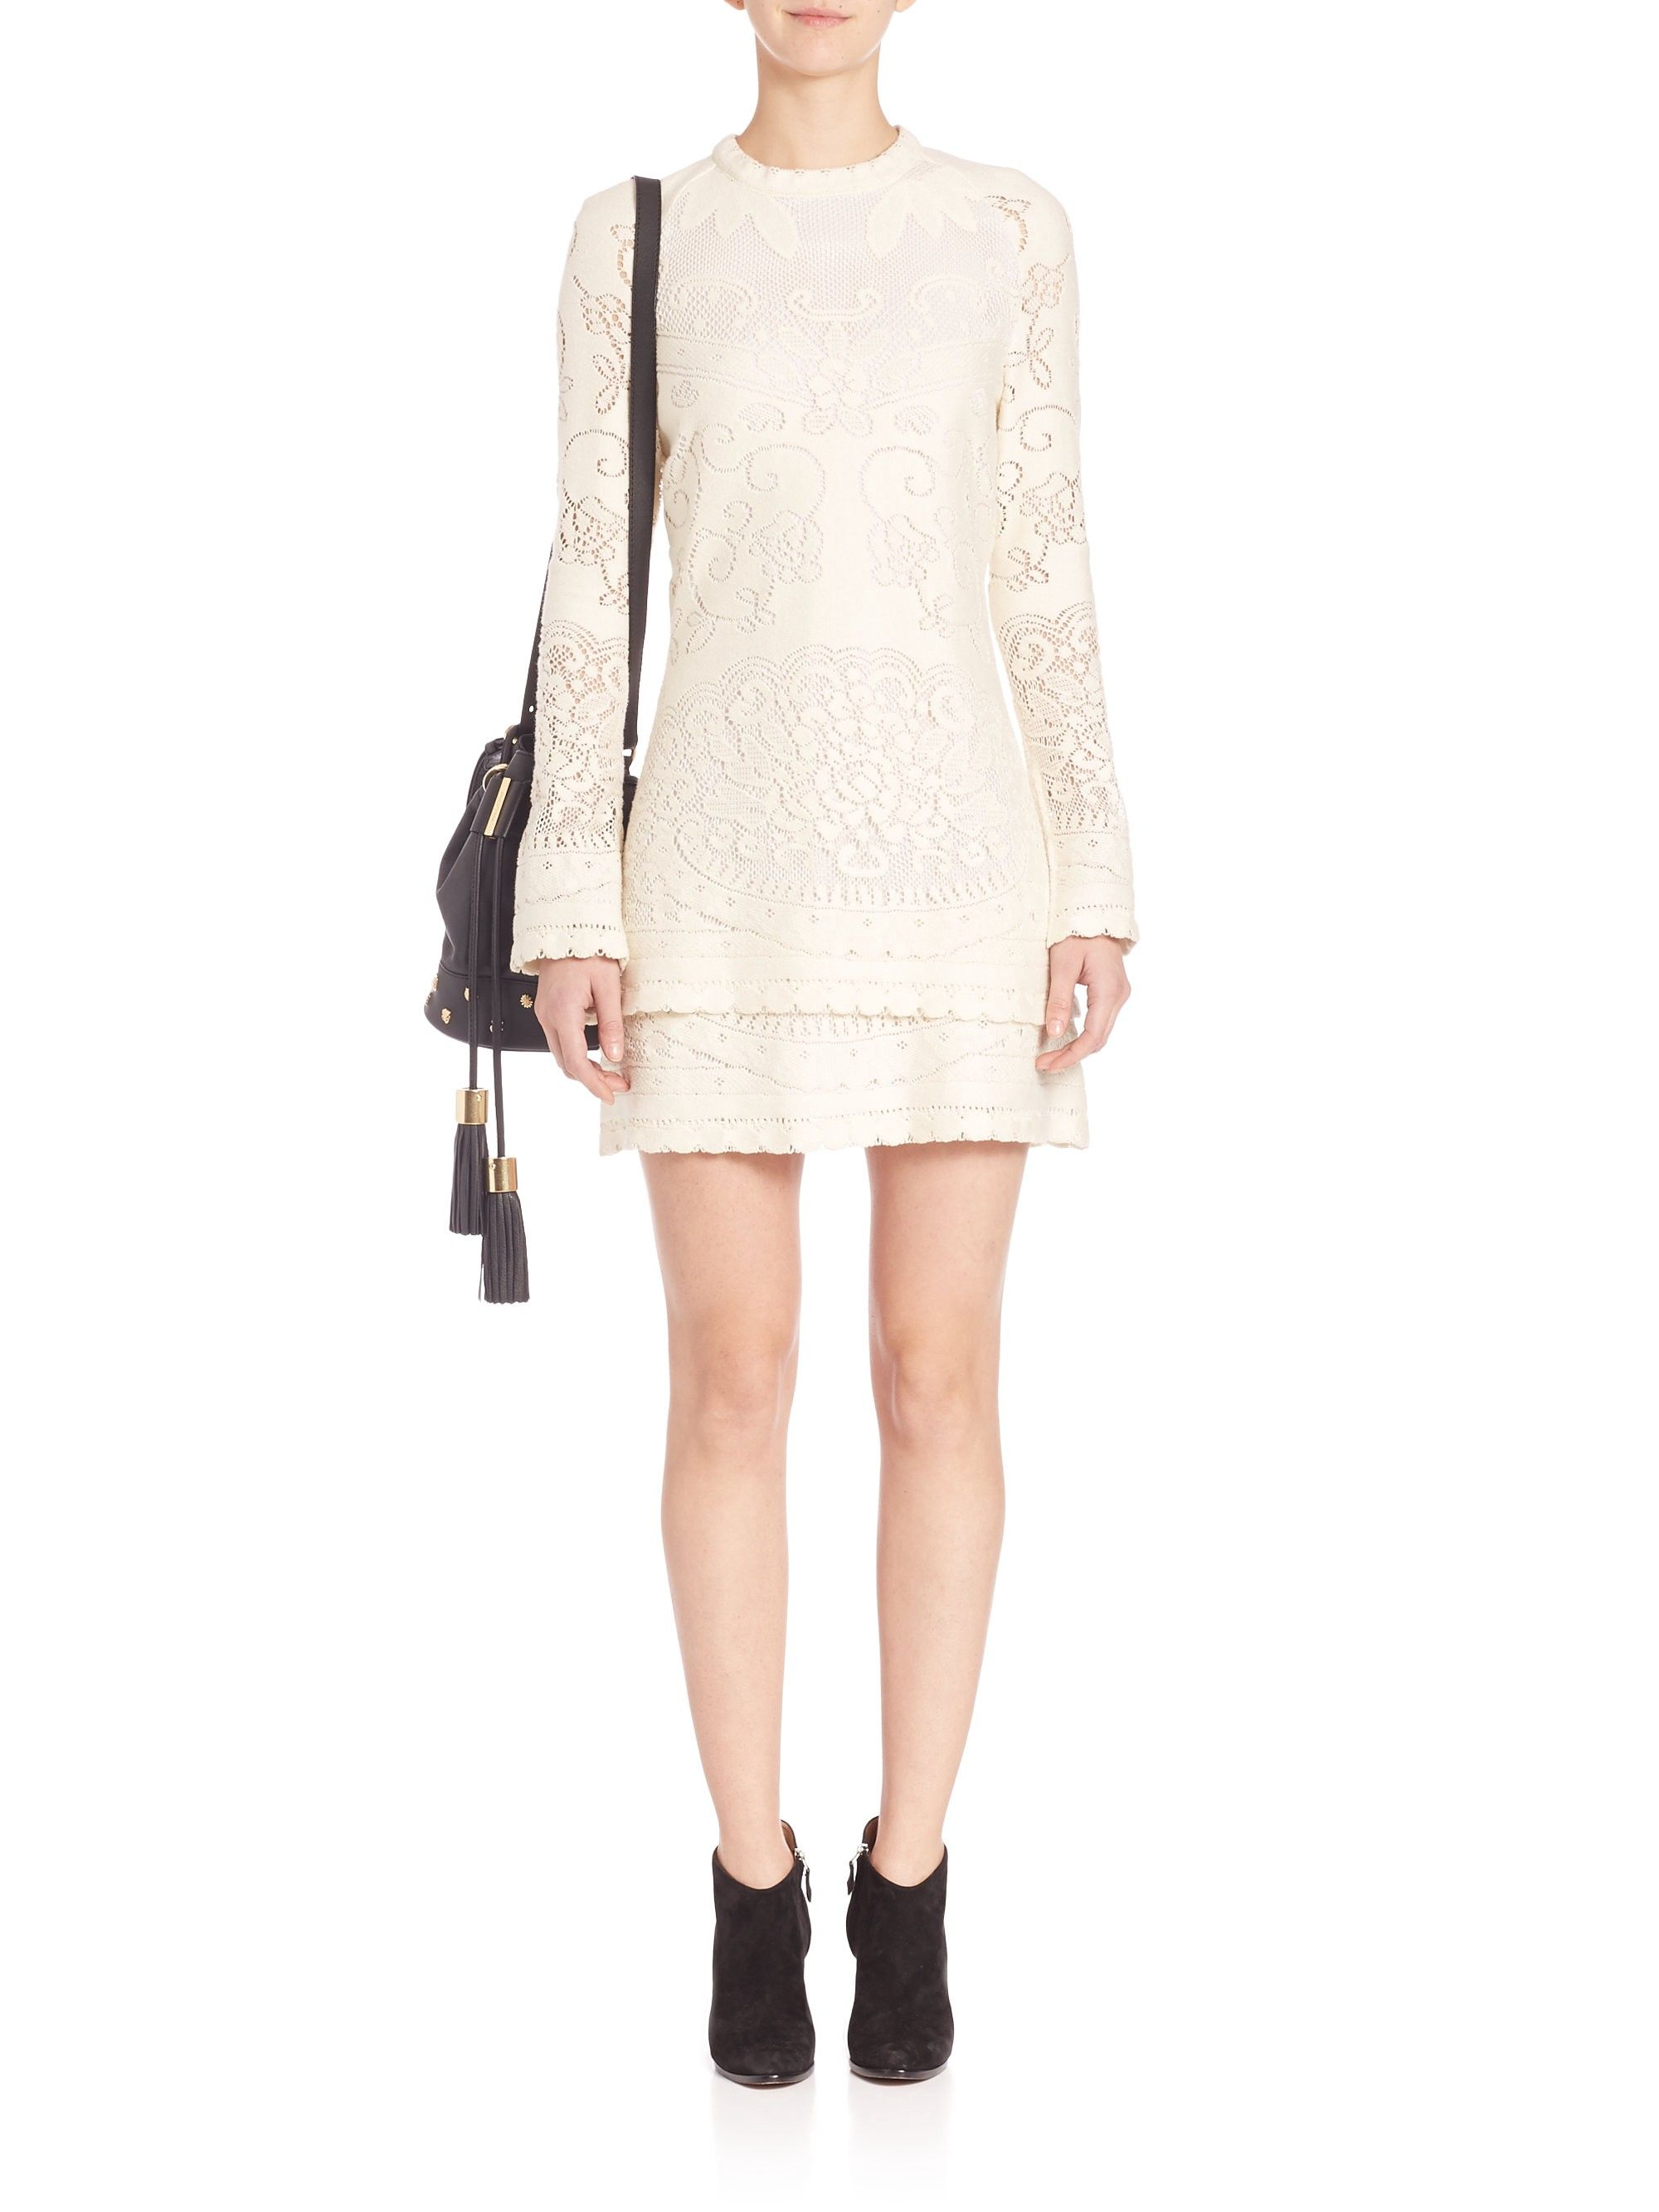 3d767baccbe Layered Lace Cutout Dress by SEE BY CHLOÉ   Products   Dresses, Lace ...